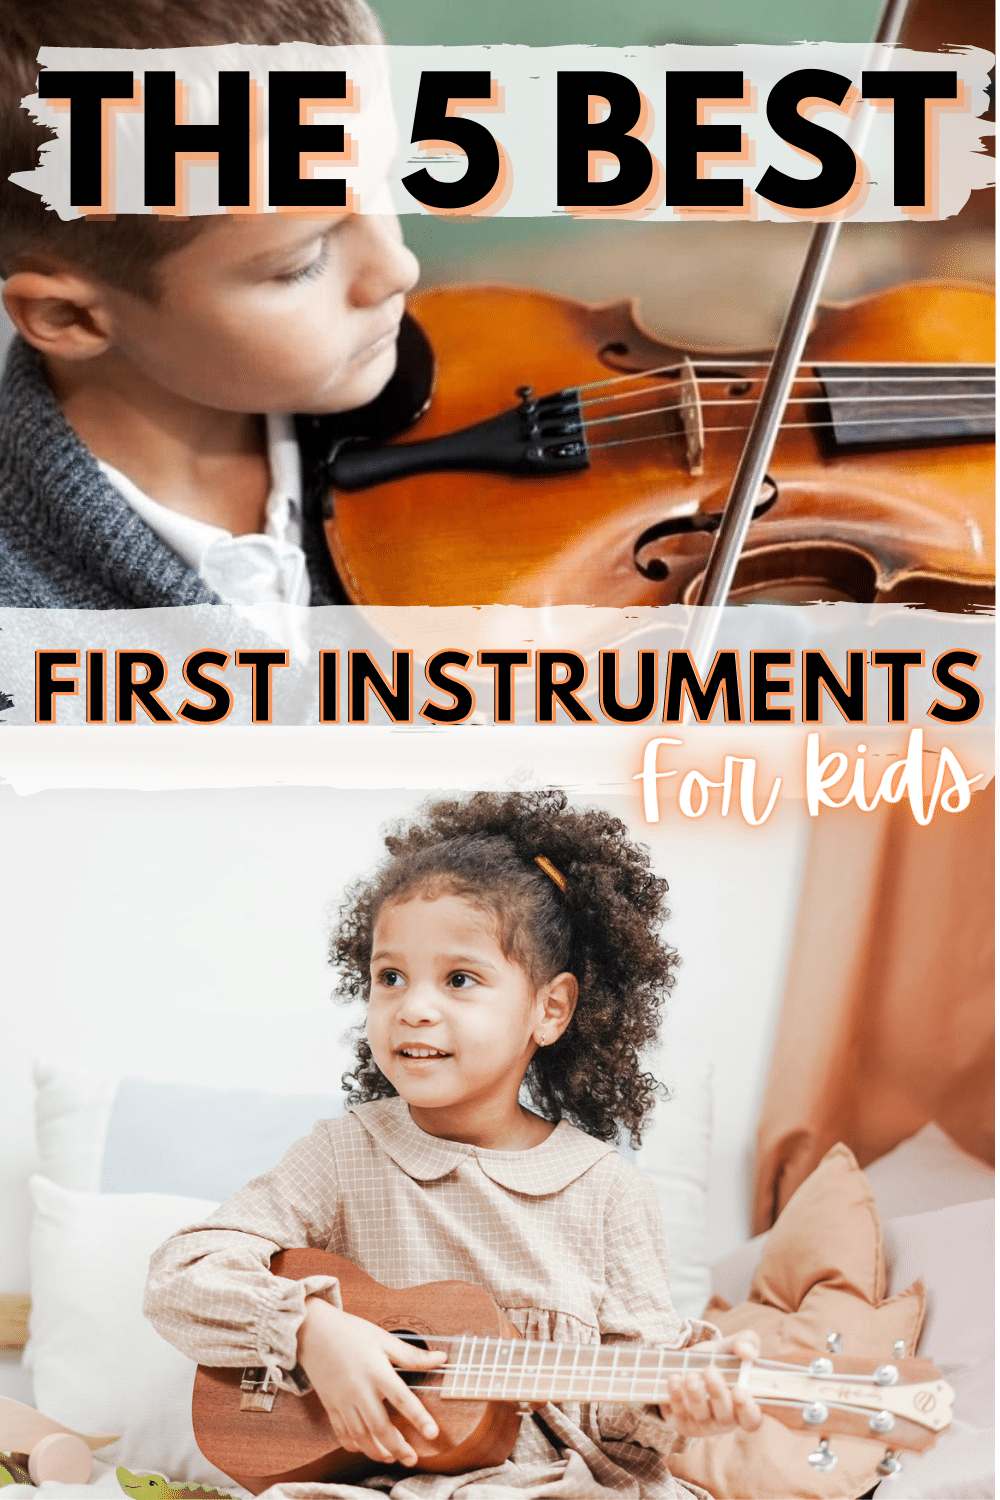 Music is so beneficial for children, especially when they learn to create it on their own. These are some of the best instruments for children to learn to foster a love of music. #childrenandmusic #firstinstruments via @wondermomwannab